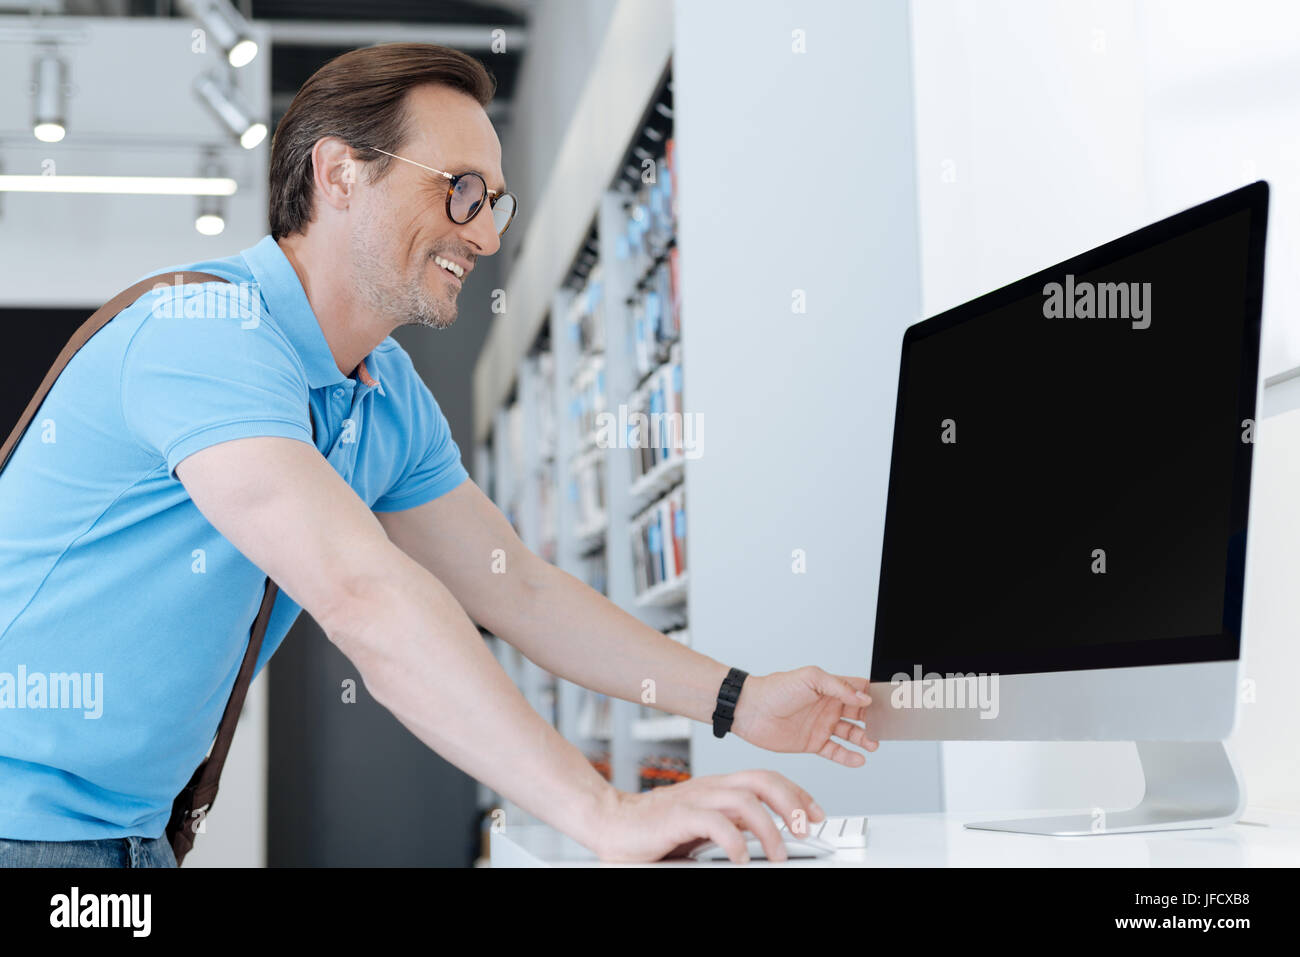 I could scarcely believe my eyes. Happy man grinning widely and leaning on a display while eying a personal computer - Stock Image